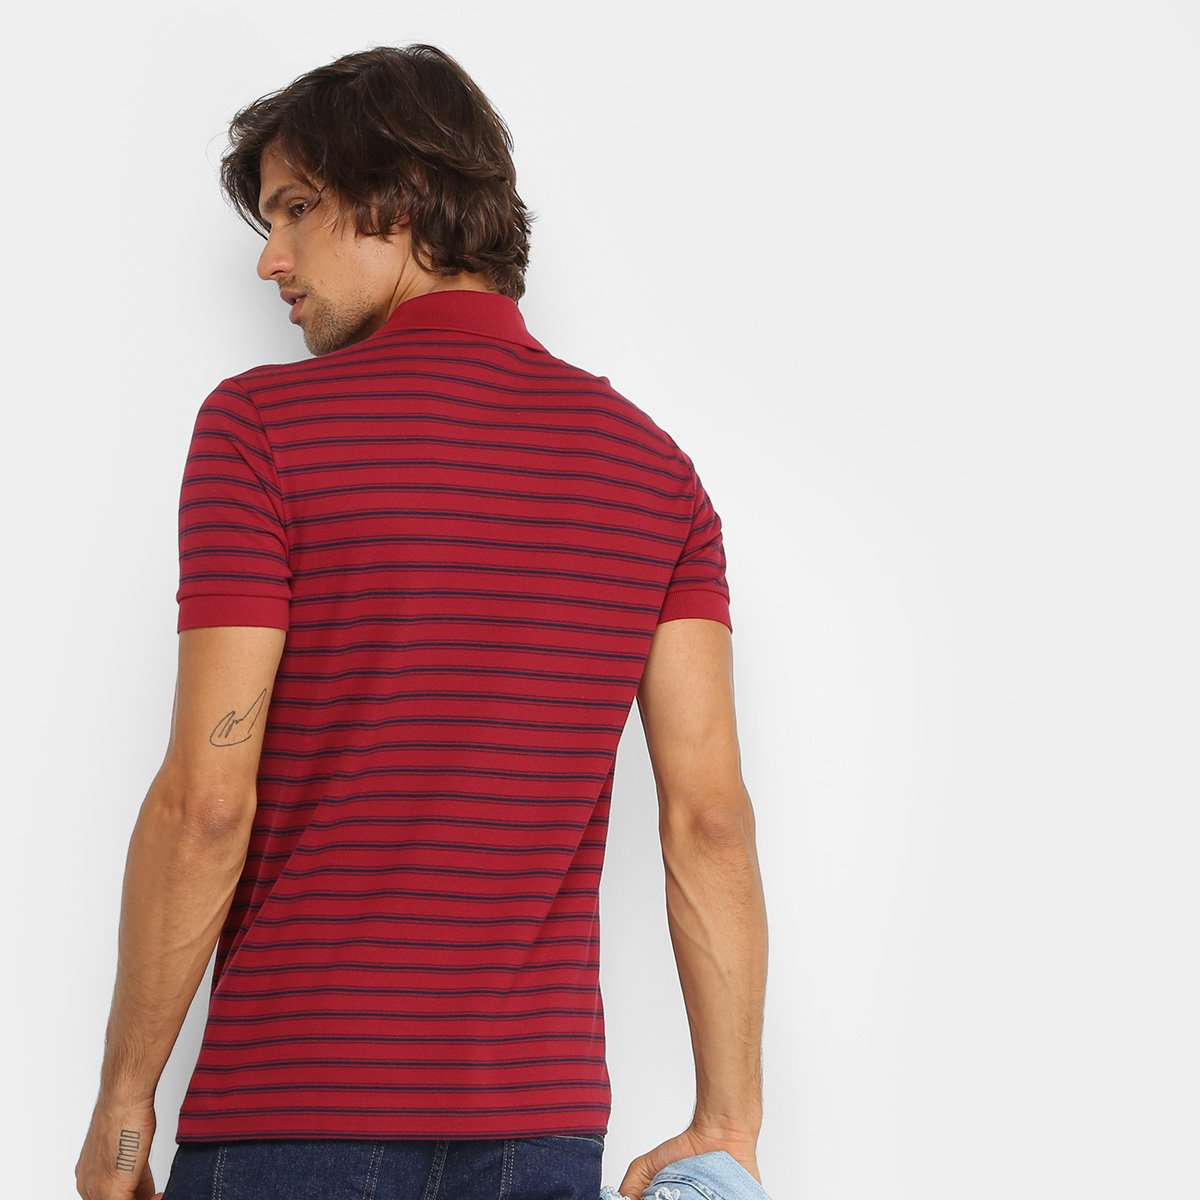 Camisa Polo Lacoste Piquet Listras Regular Fit Masculina - Compre ... c7268989a0b6f